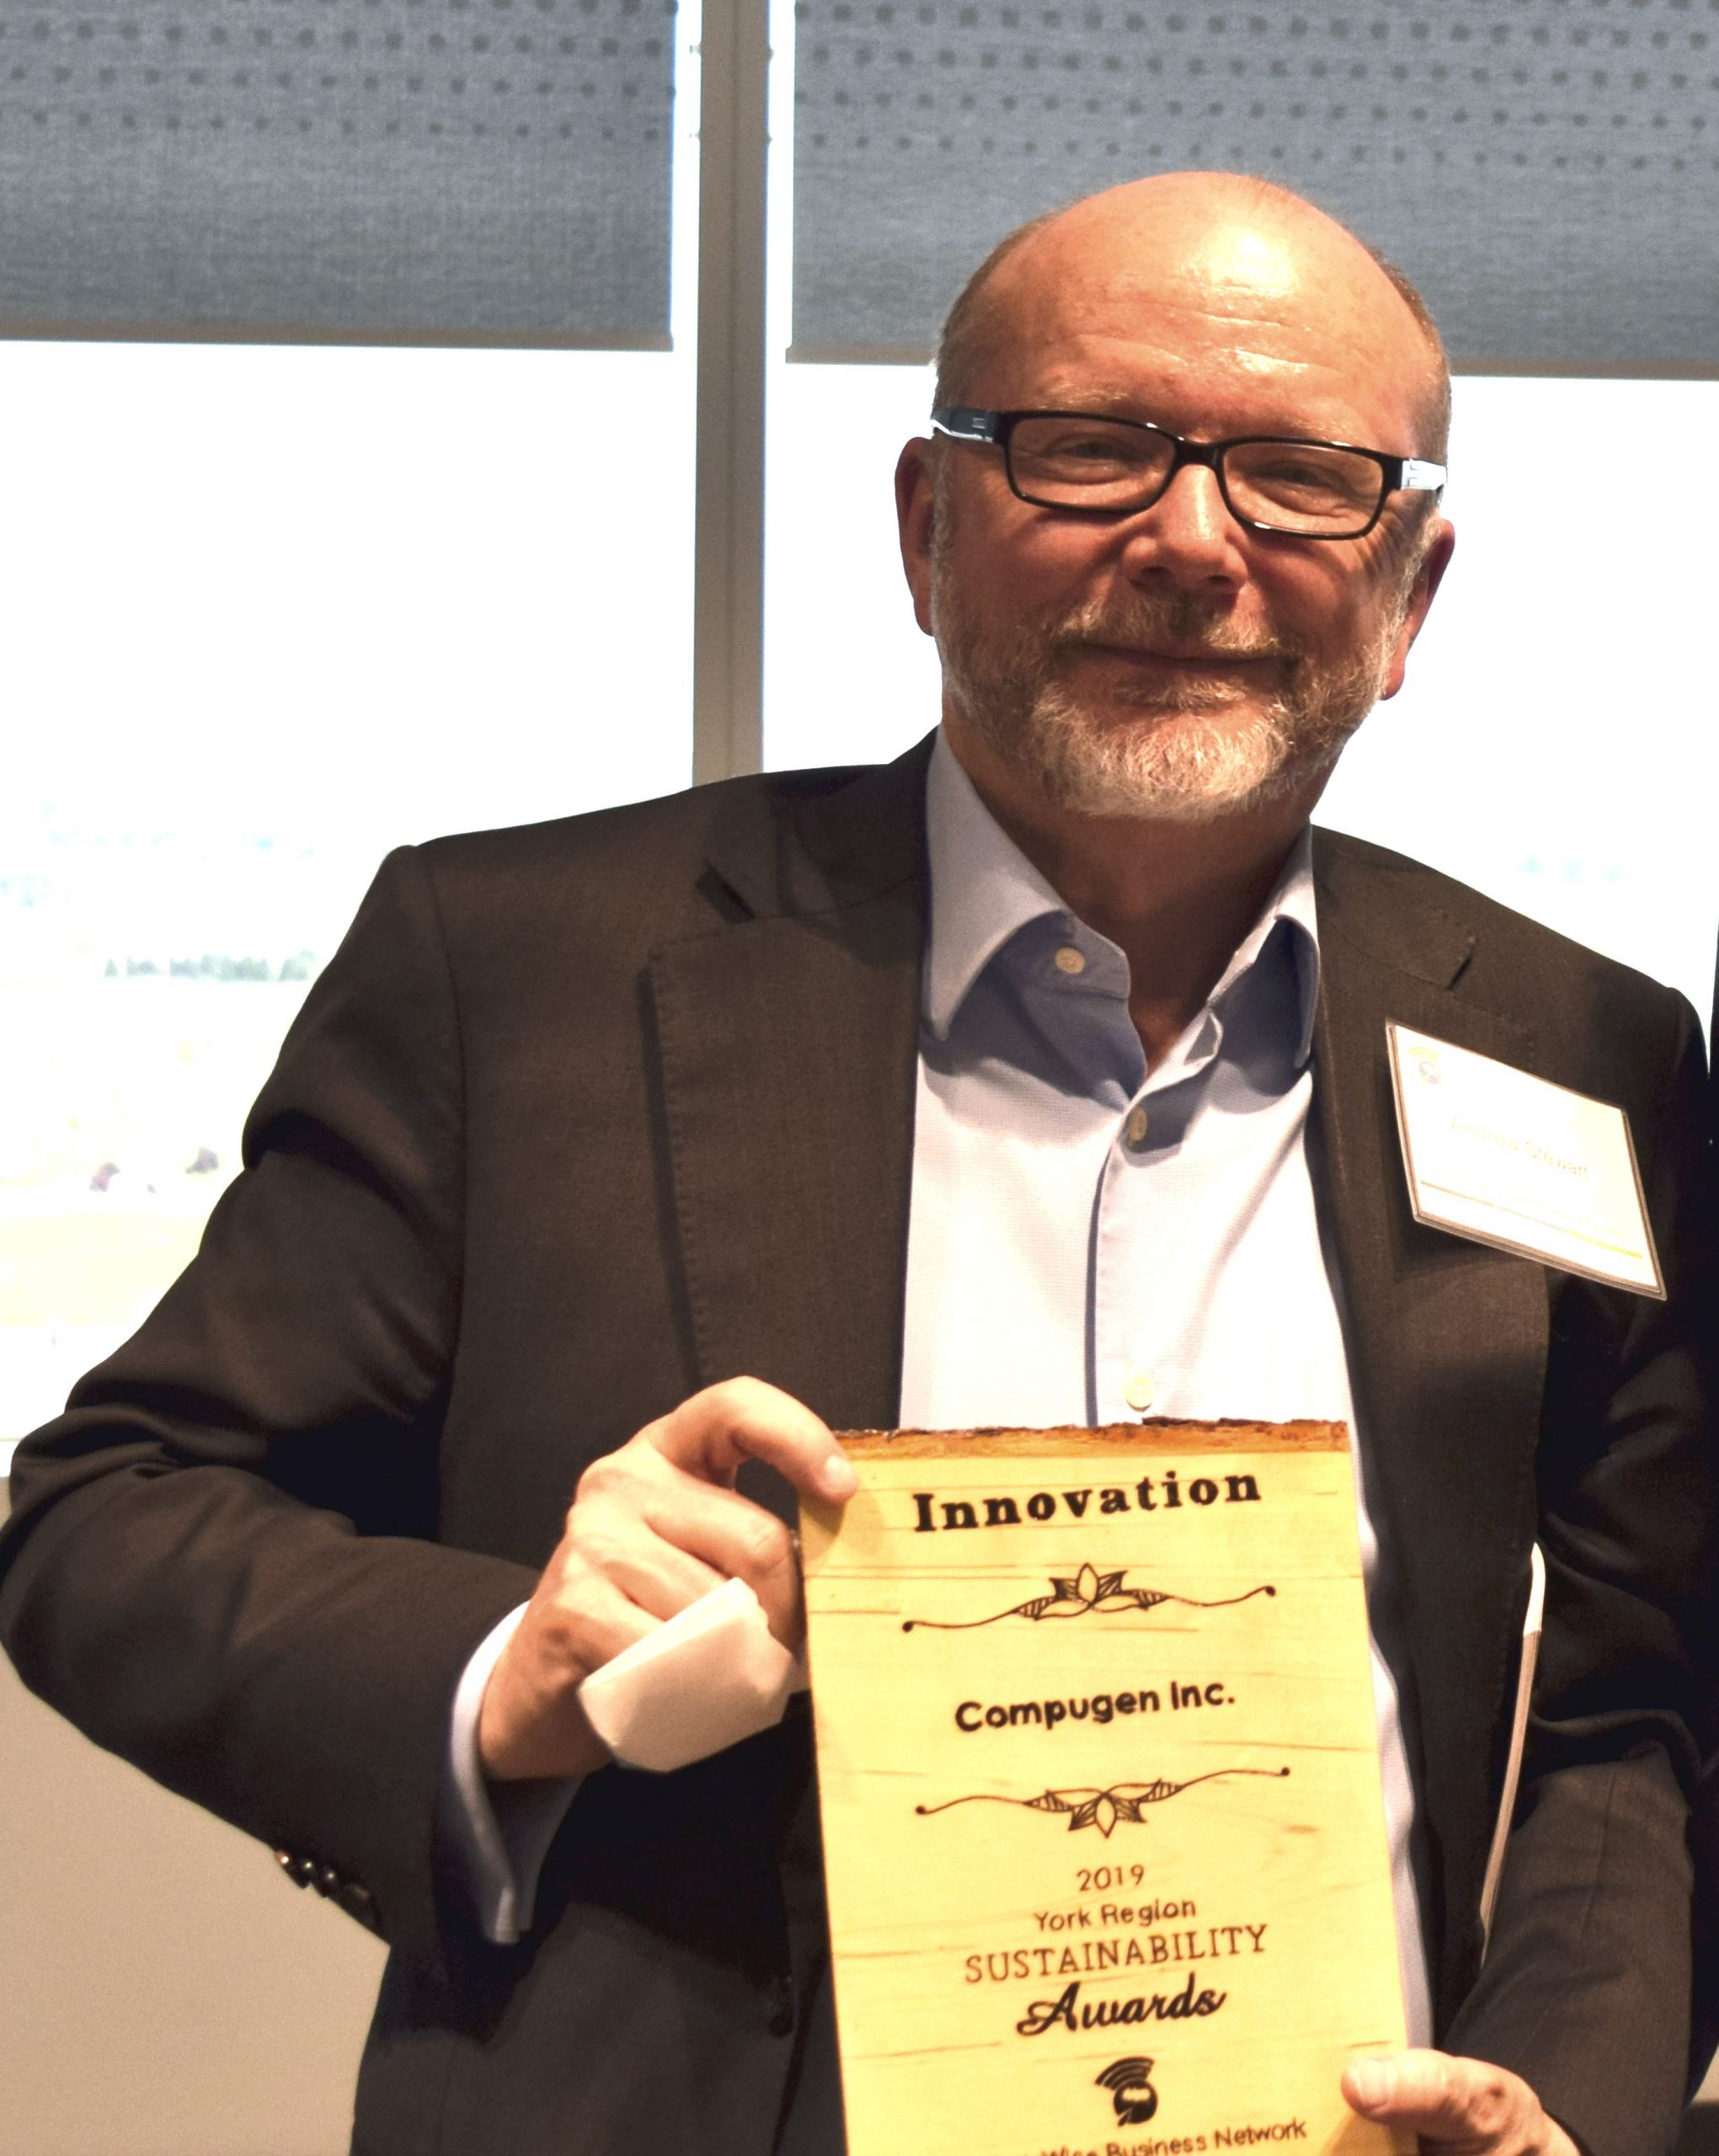 Compugen Inc and Green4Good jointly awarded Innovation Award at York Region Sustainability Awards Ceremony